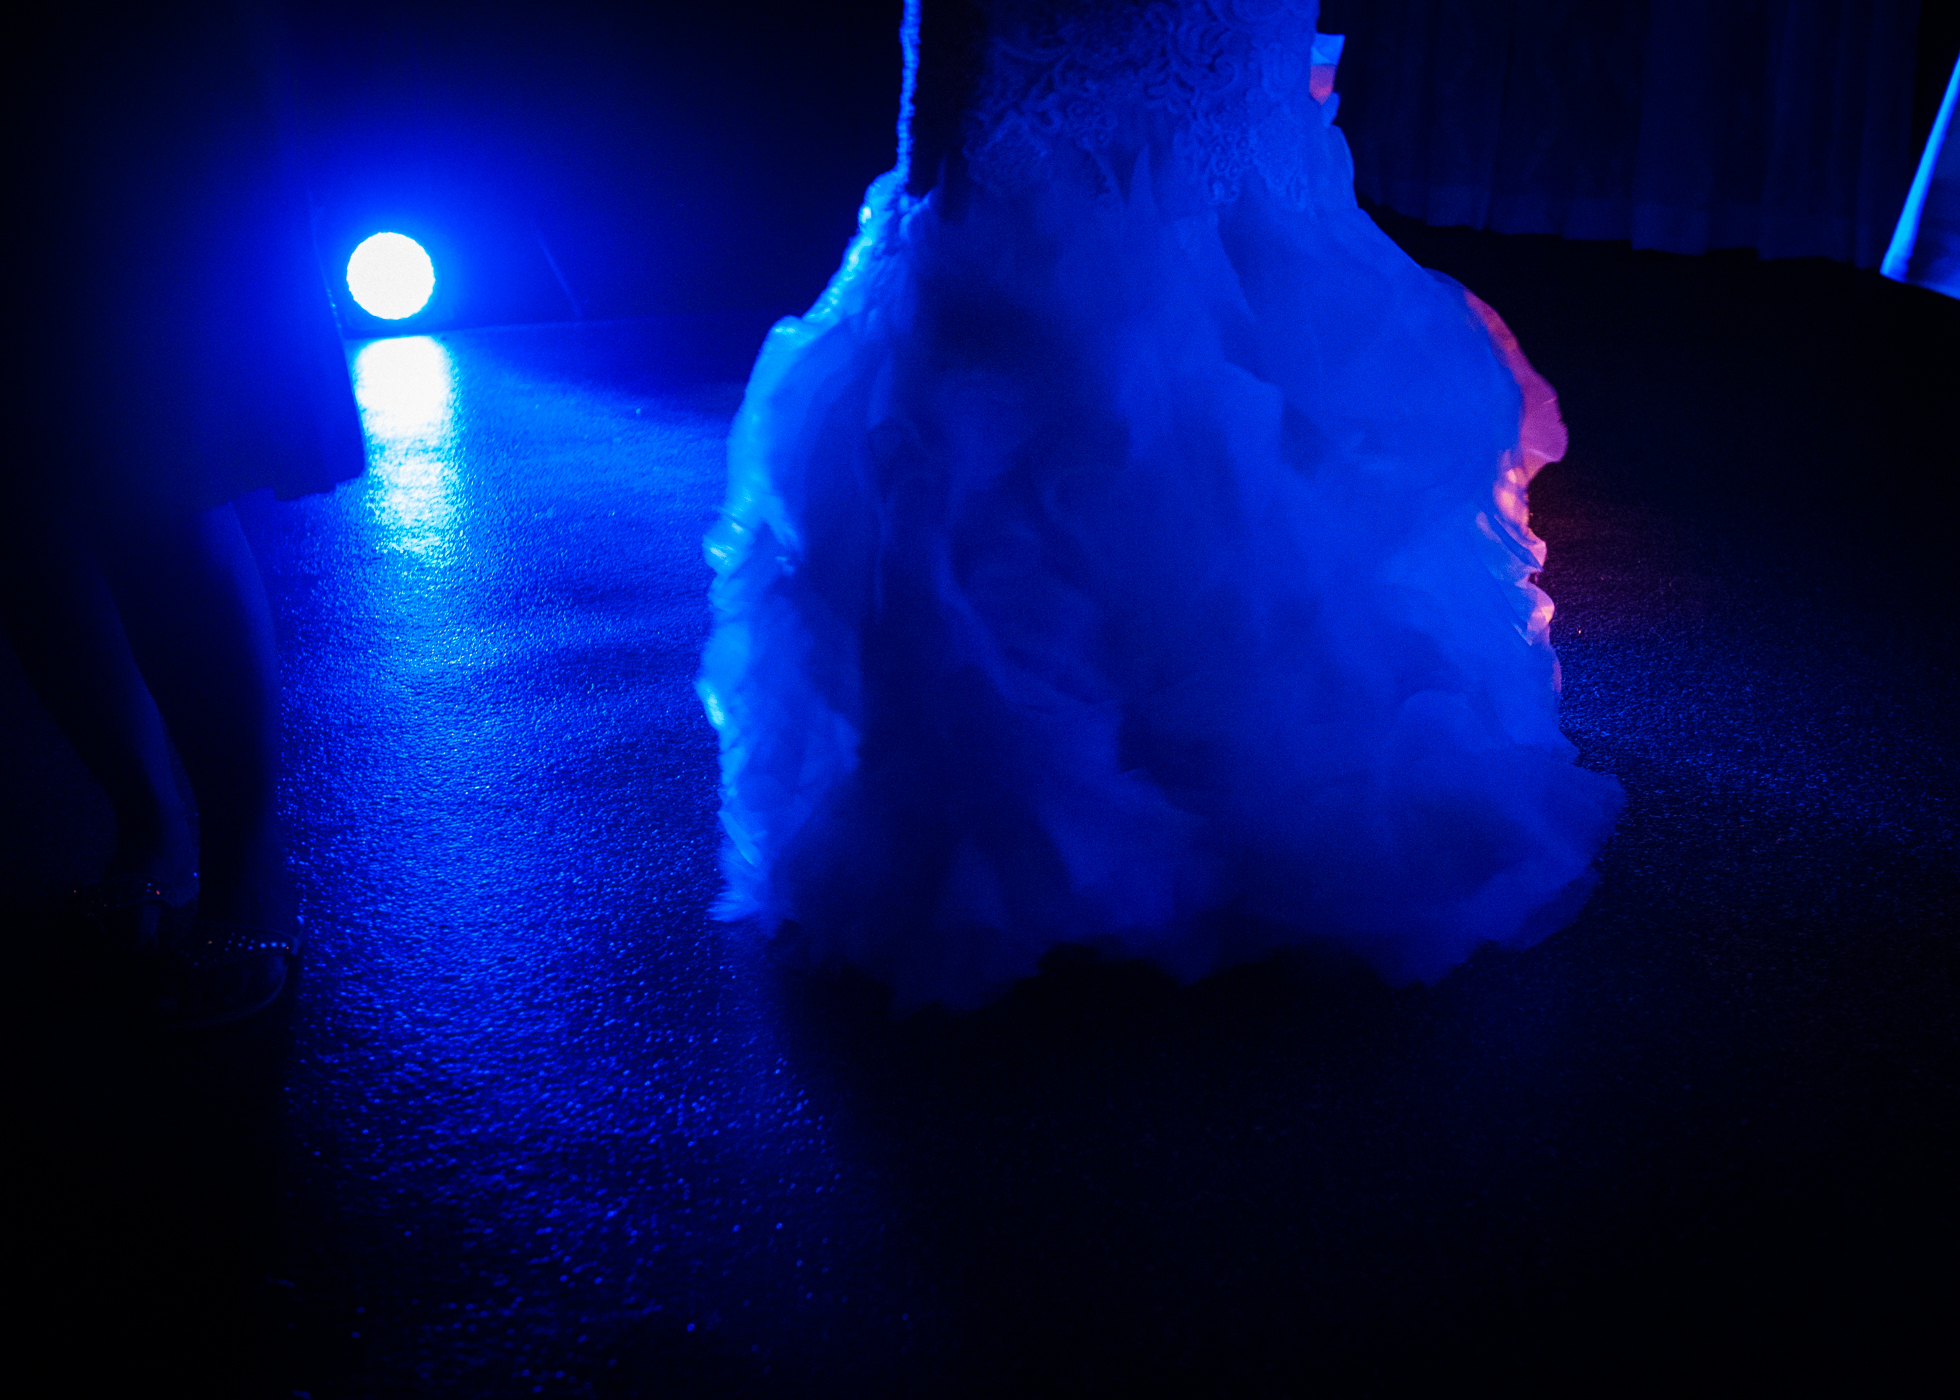 brides gown lit up on the dance floor